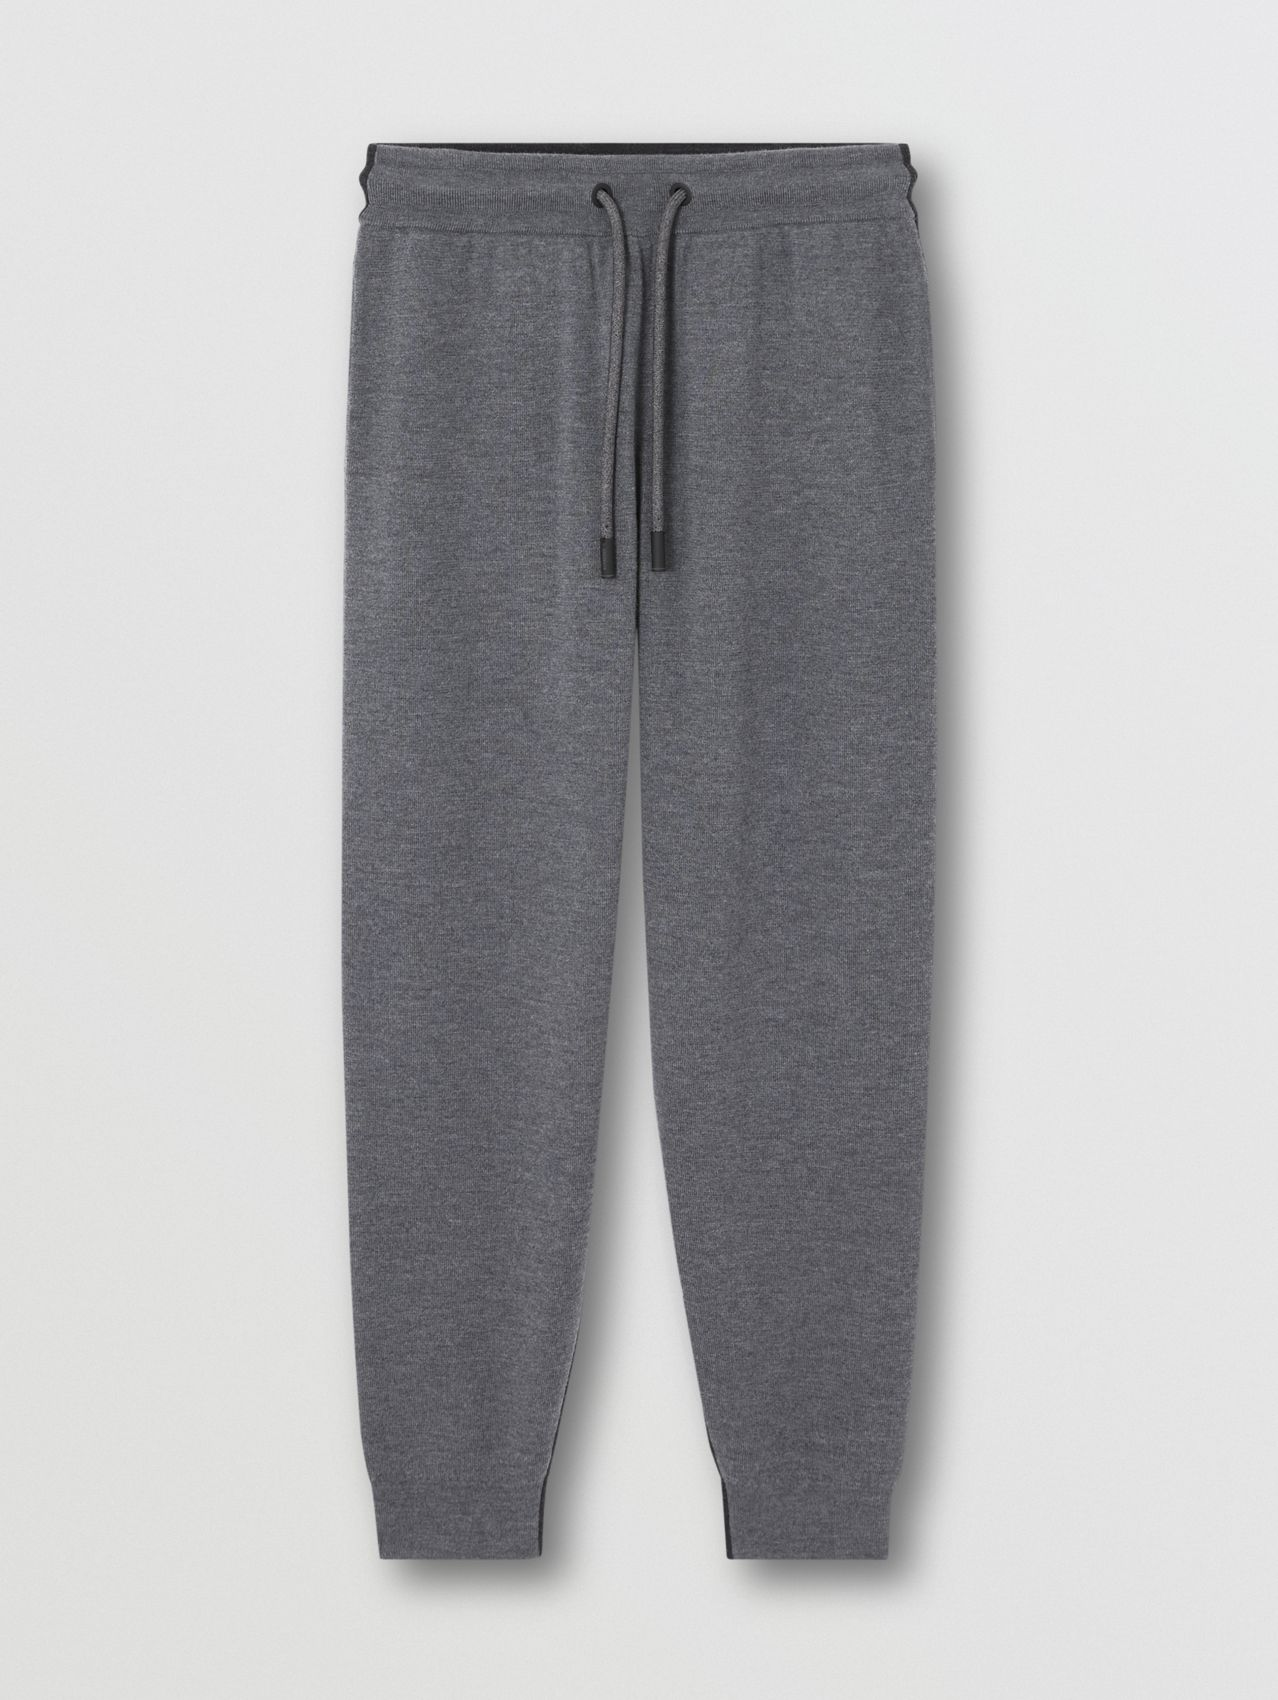 Two-tone Merino Wool Drawcord Jogging Pants in Charcoal Melange